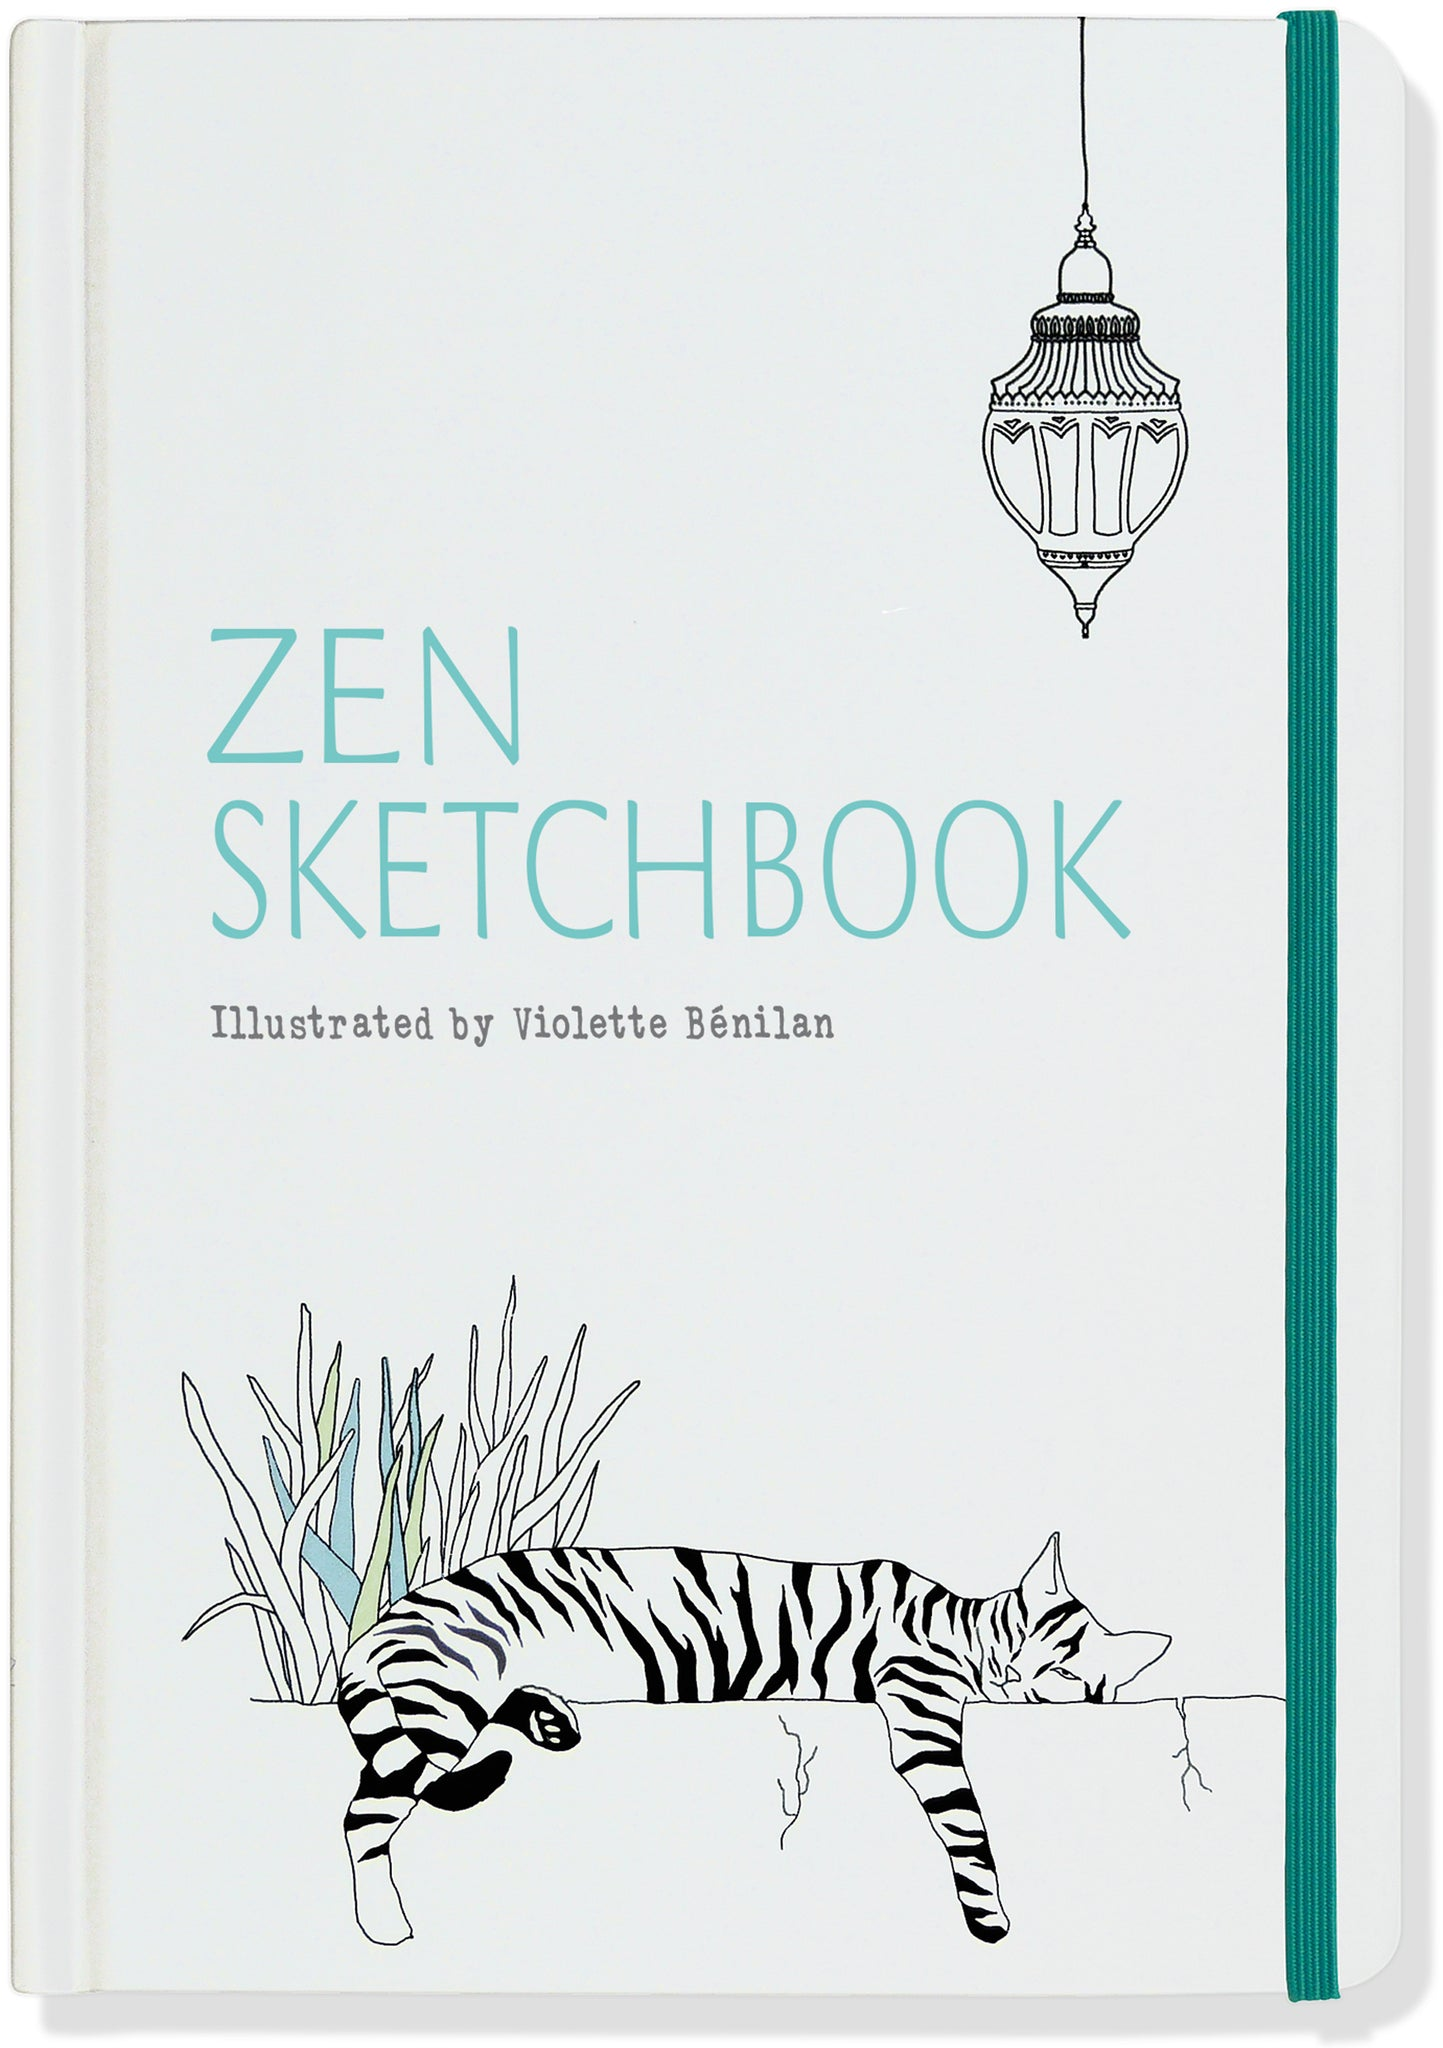 zen sketchbook & notebook - Funky Cat Emporium